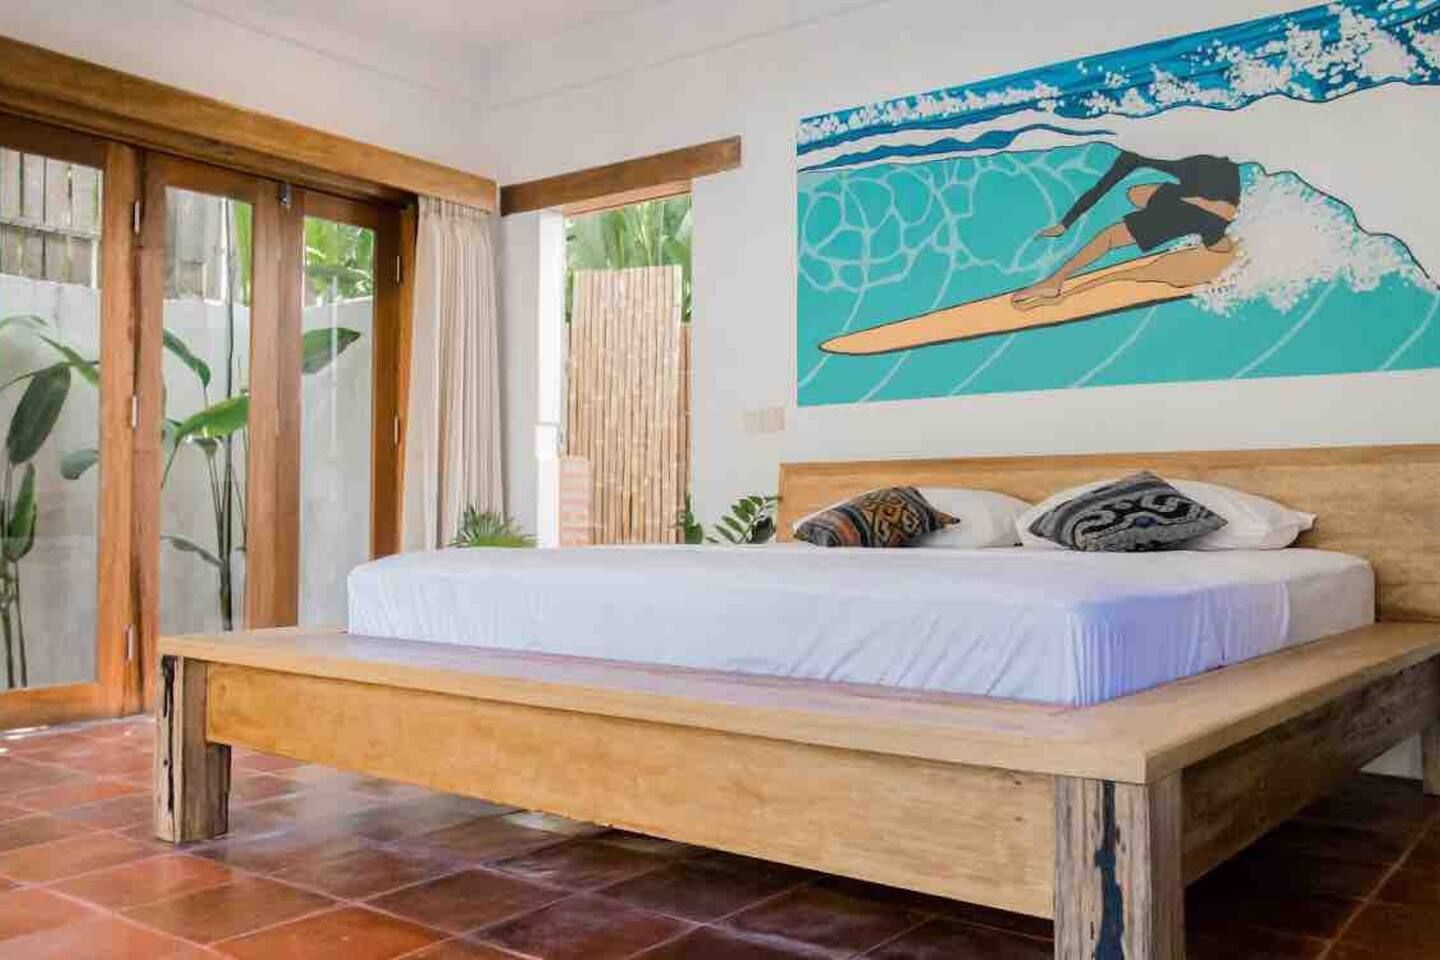 Grand floor bedroom featuring a garden view. The wall features a hand painted mural by a local artist. The room is fitted with AC, seating and desk, a comfy bed and clothes storage.